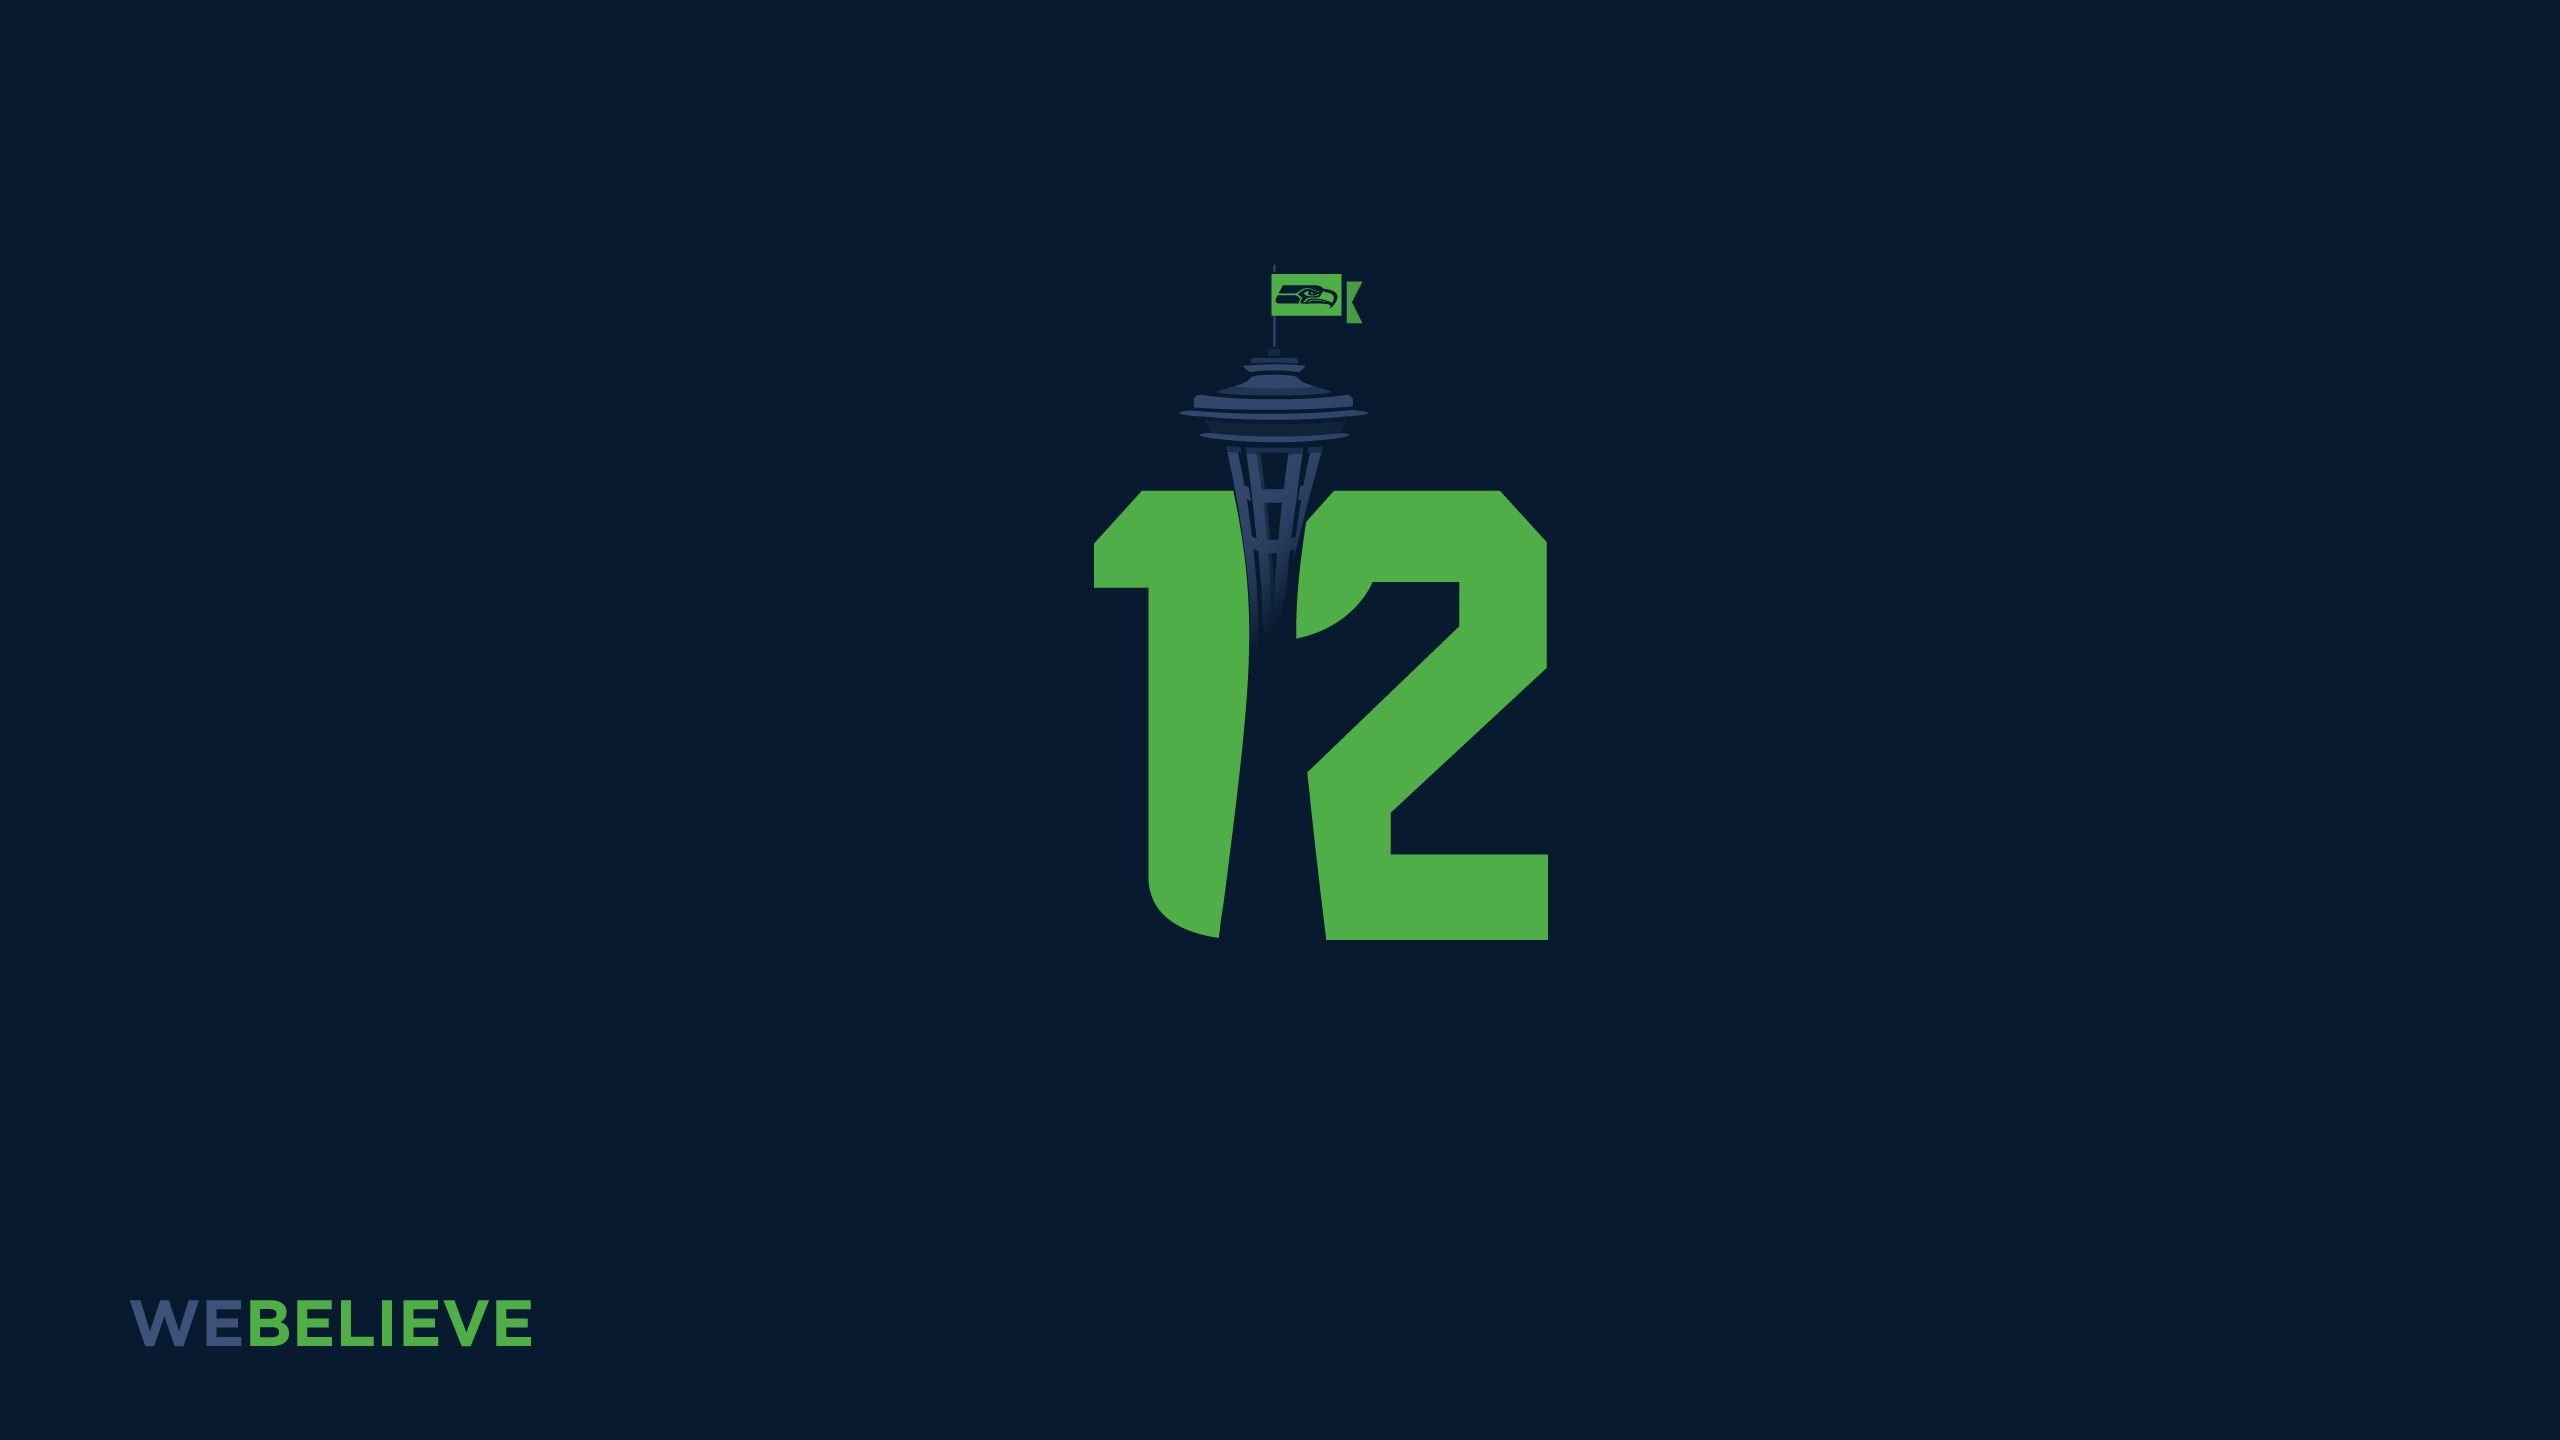 12th Man Desktop Background #Seahawks #GoHawks http://bajigroup.com/wp-content/uploads/2013/01/BAJIGROUP.COM_Hawks1_2560X1440.jpg